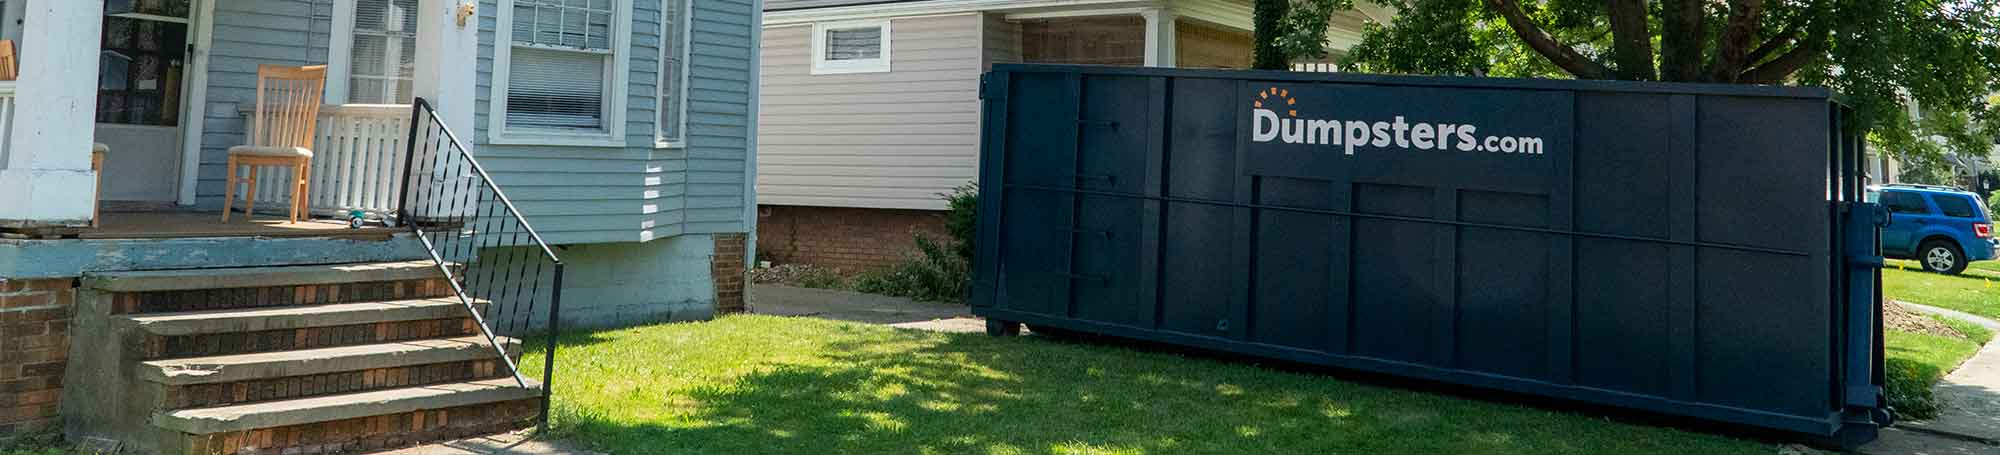 A Roll Off Dumpster in a Residential Driveway Next to a Blue House.